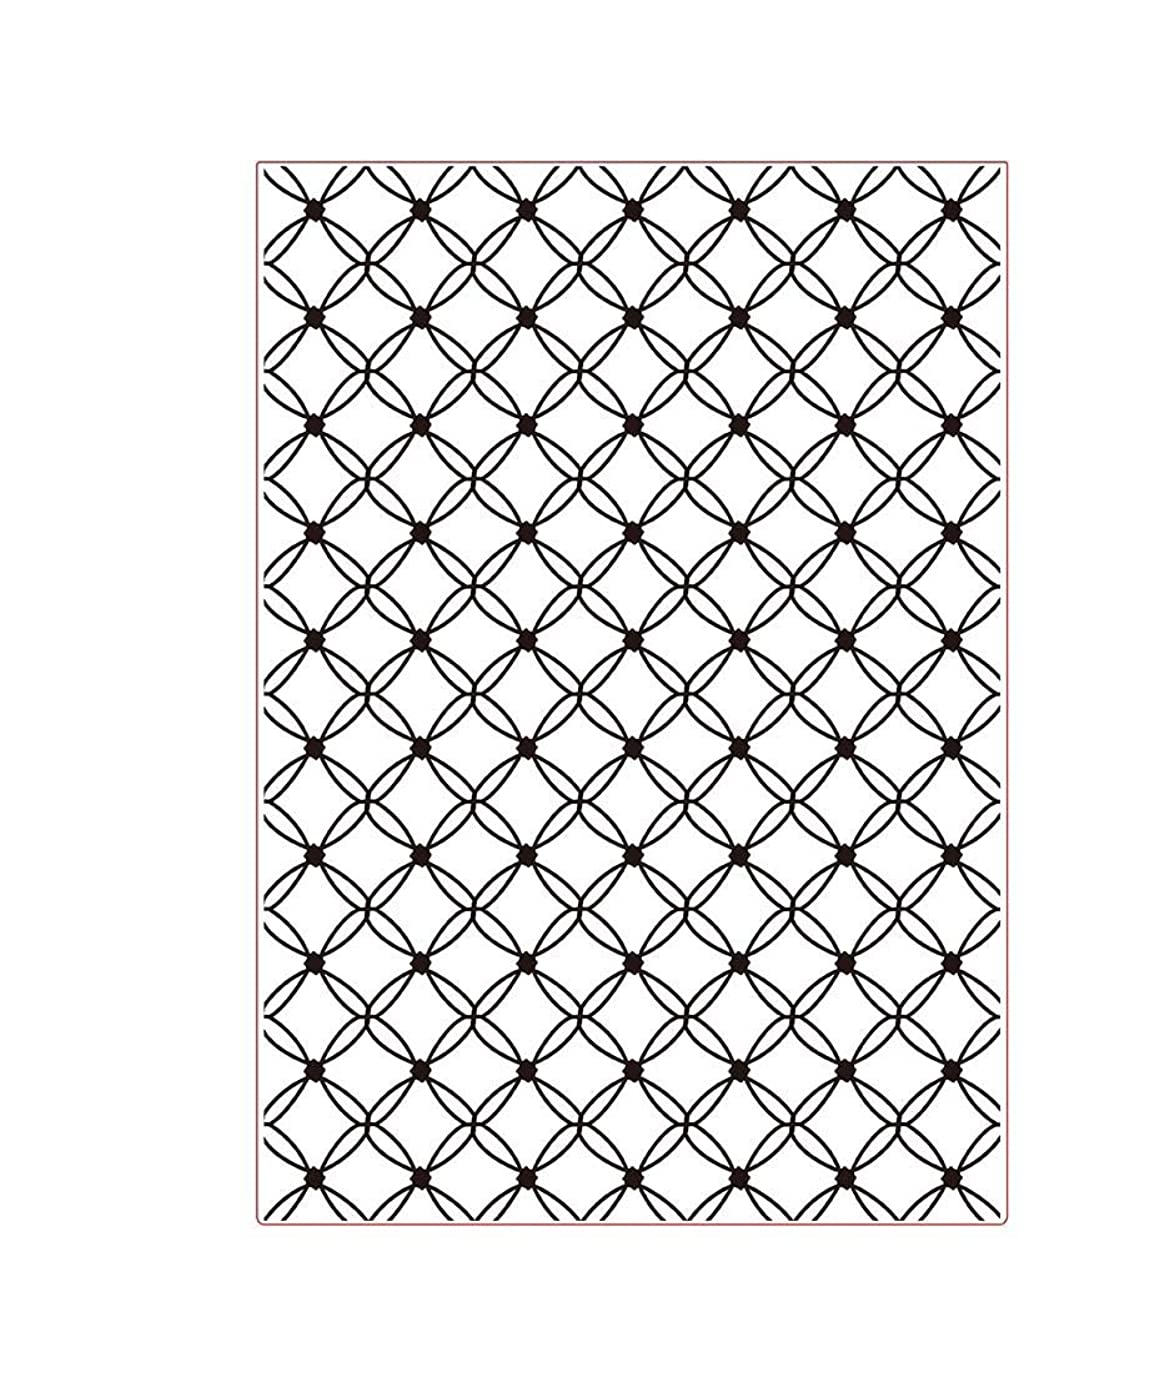 Darice Shell Embossing Template, Transparent, A4